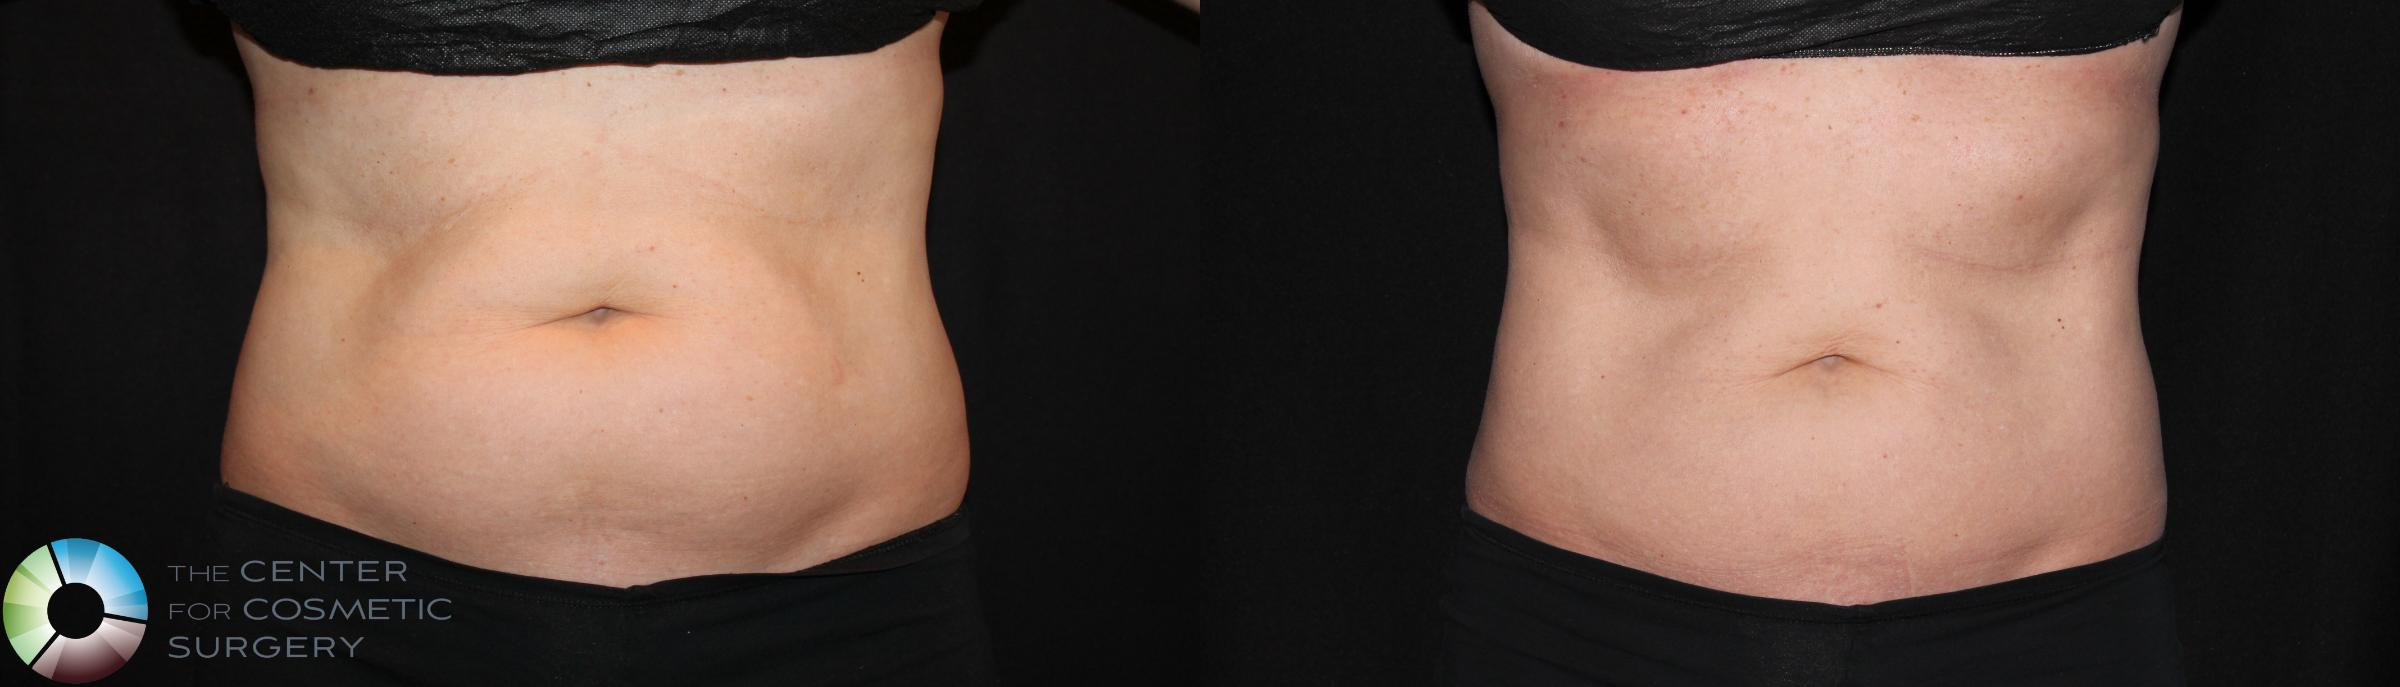 CoolSculpting Case 735 Before & After View #1 | Golden, CO | The Center for Cosmetic Surgery